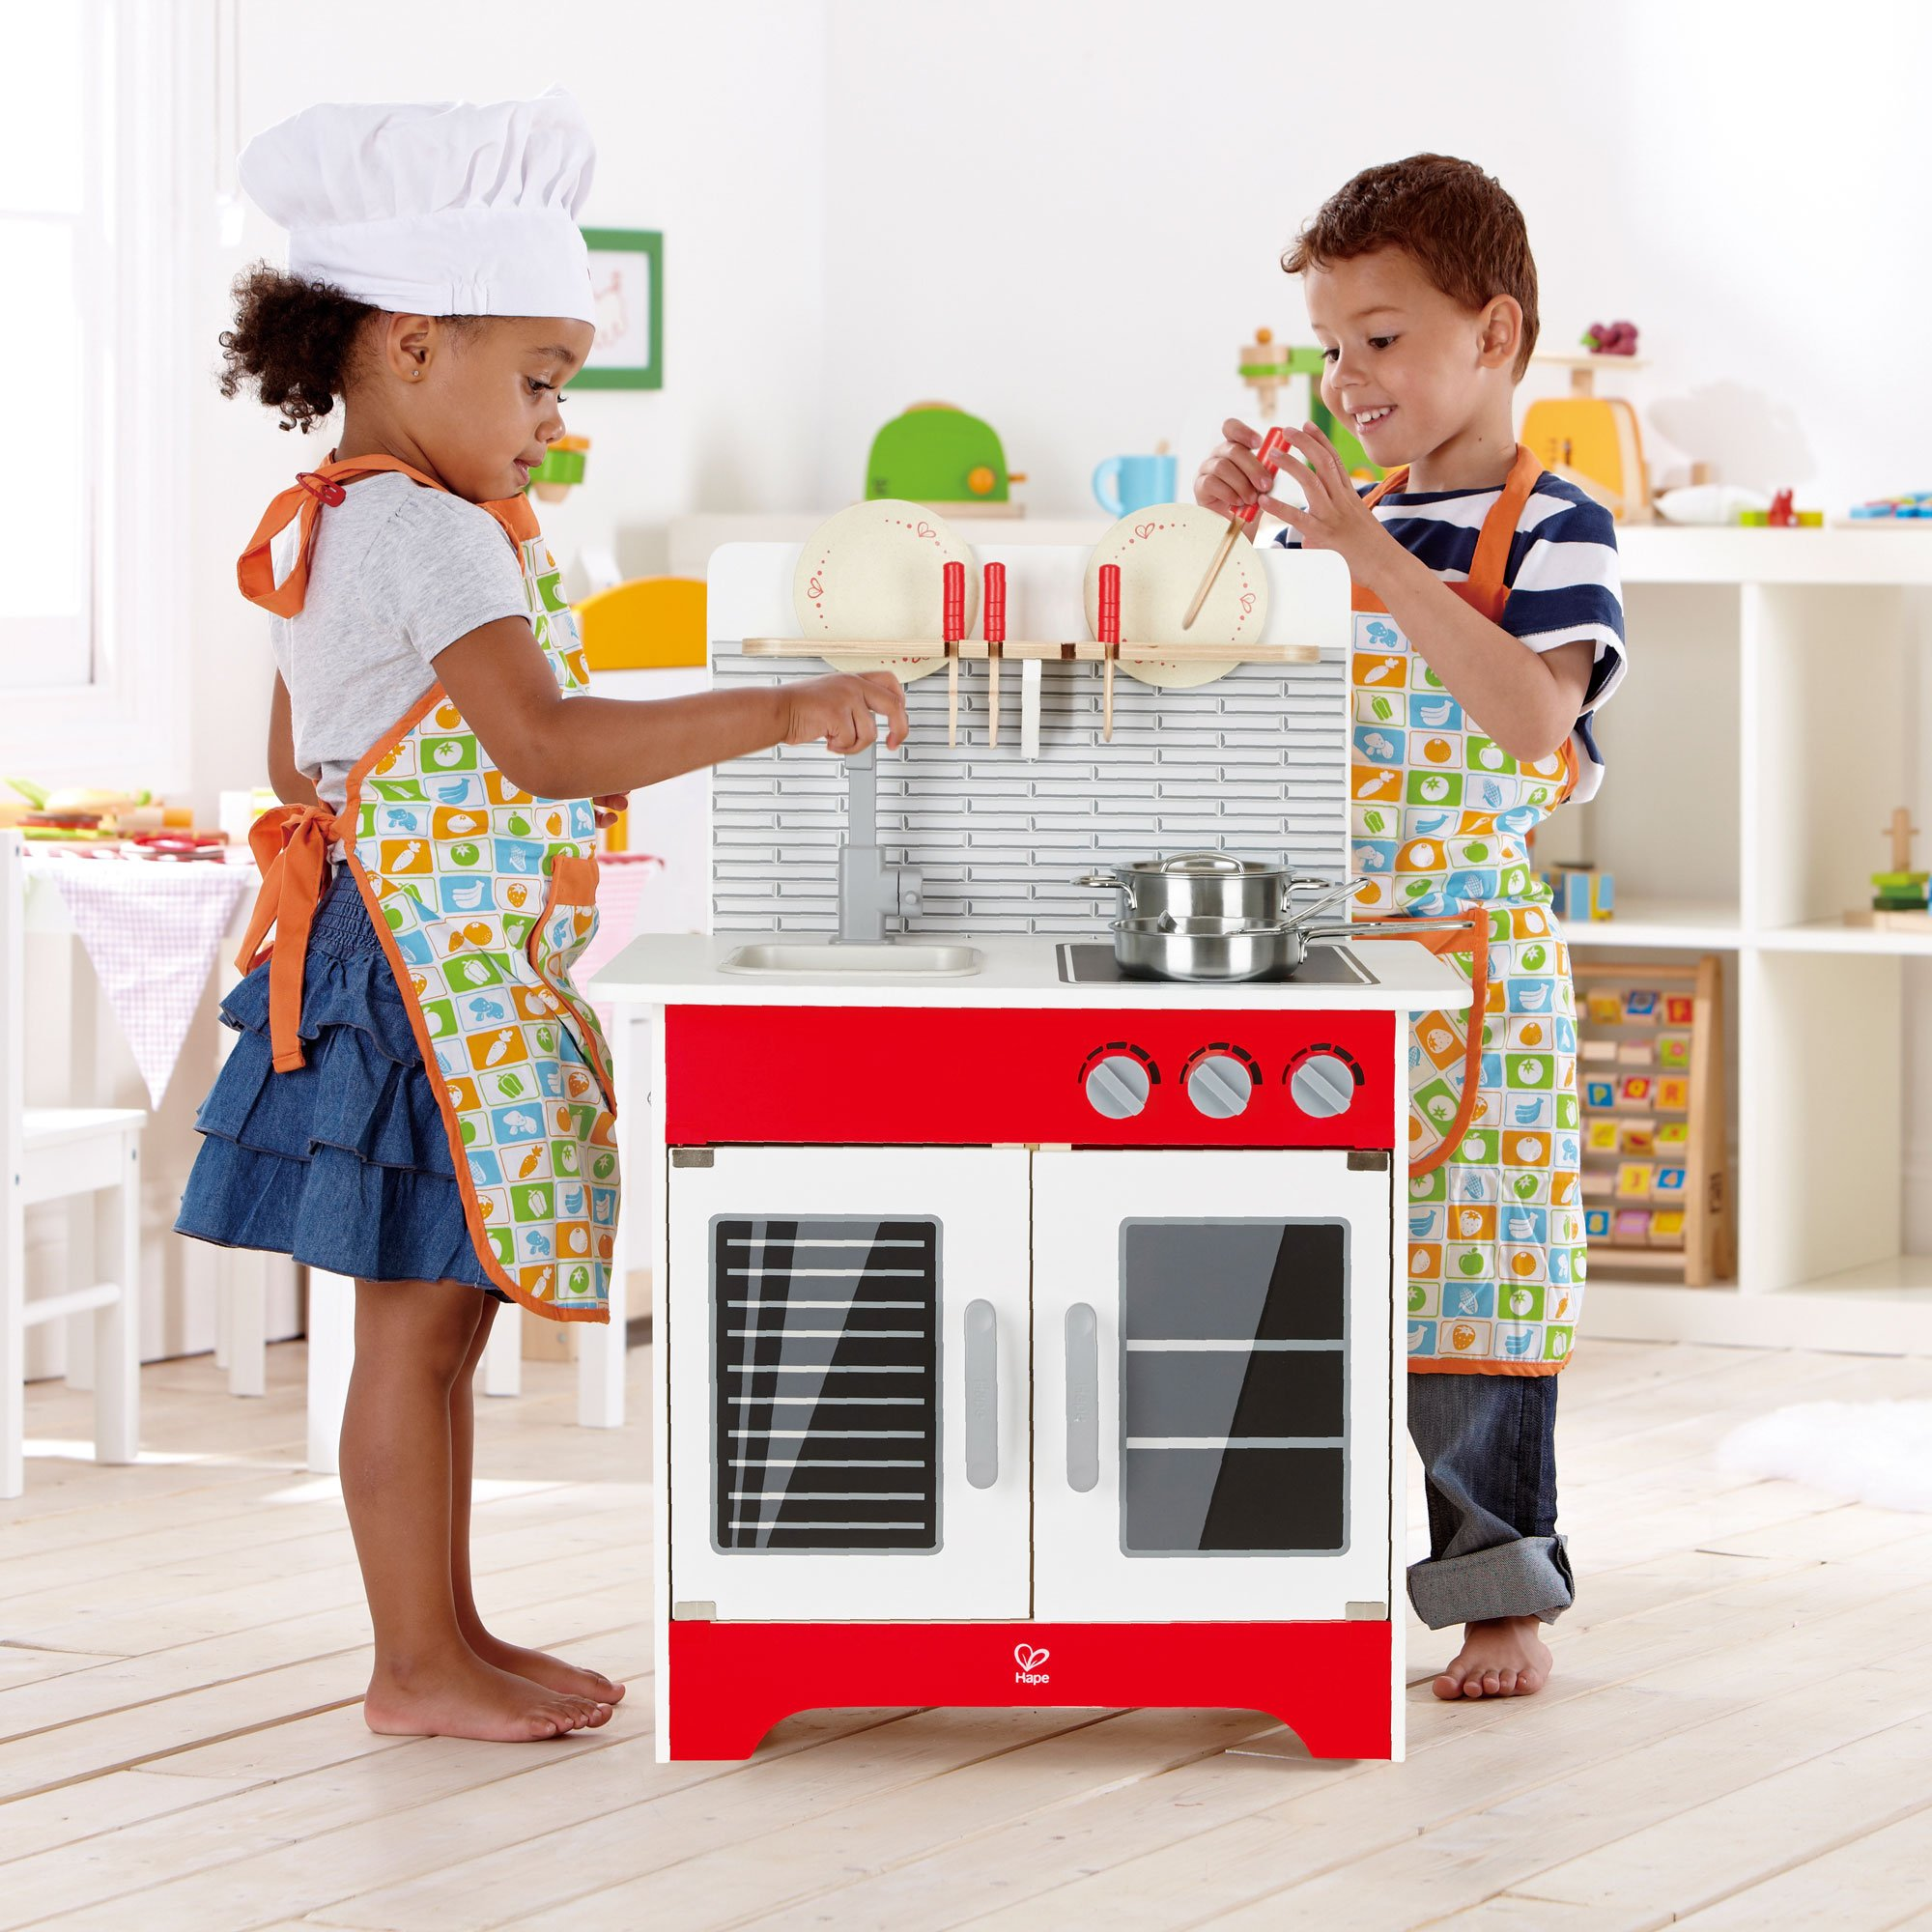 Hape Wooden City Cafe Pretend Cooking Play Kitchen Set